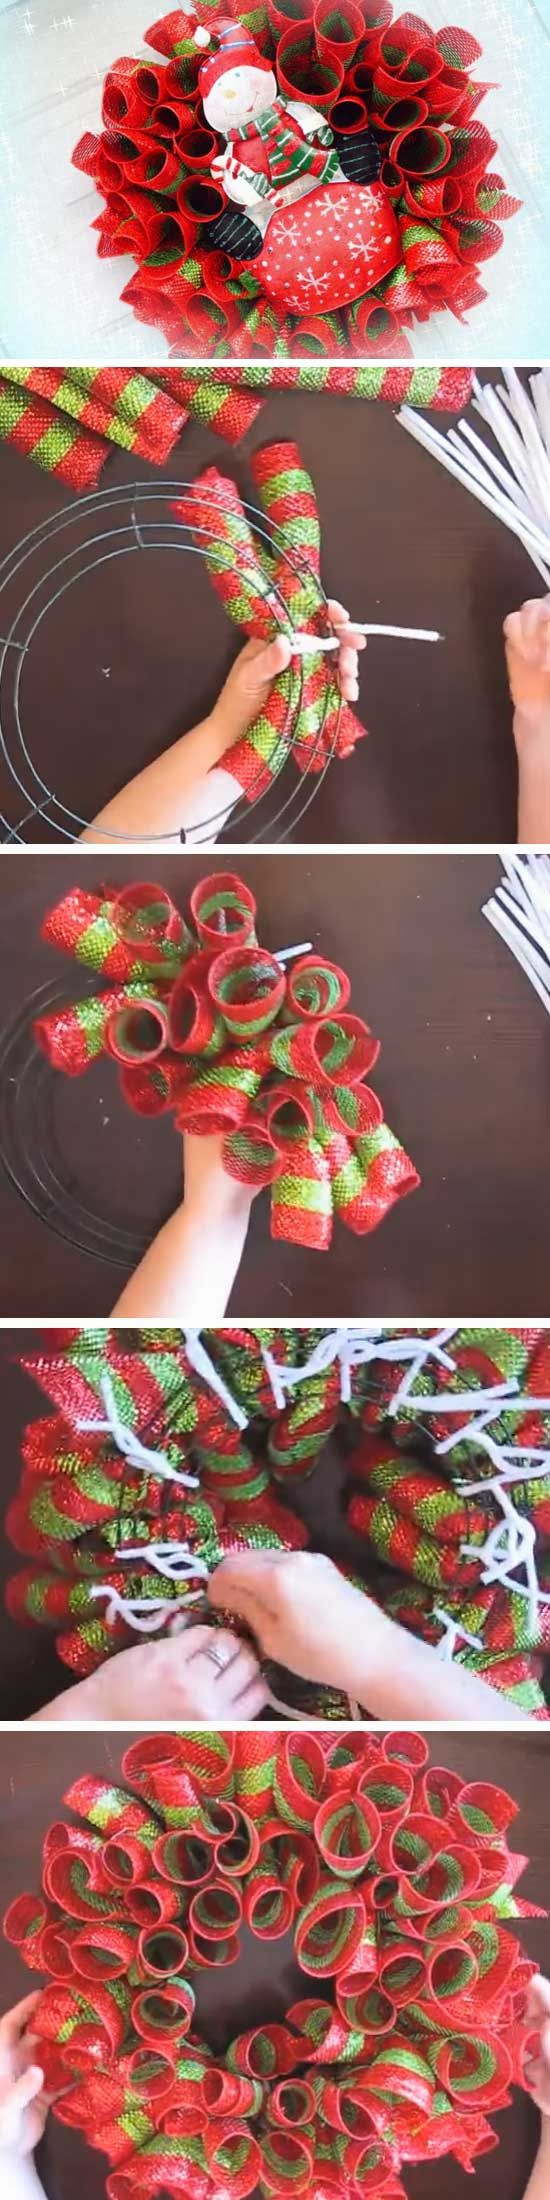 Ribbon wreath tutorial on wire hanger - How To Make A Spiral Deco Mesh Wreath Diy Spiral Deco Mesh Wreath Deco Mesh Wreaths And Spiral